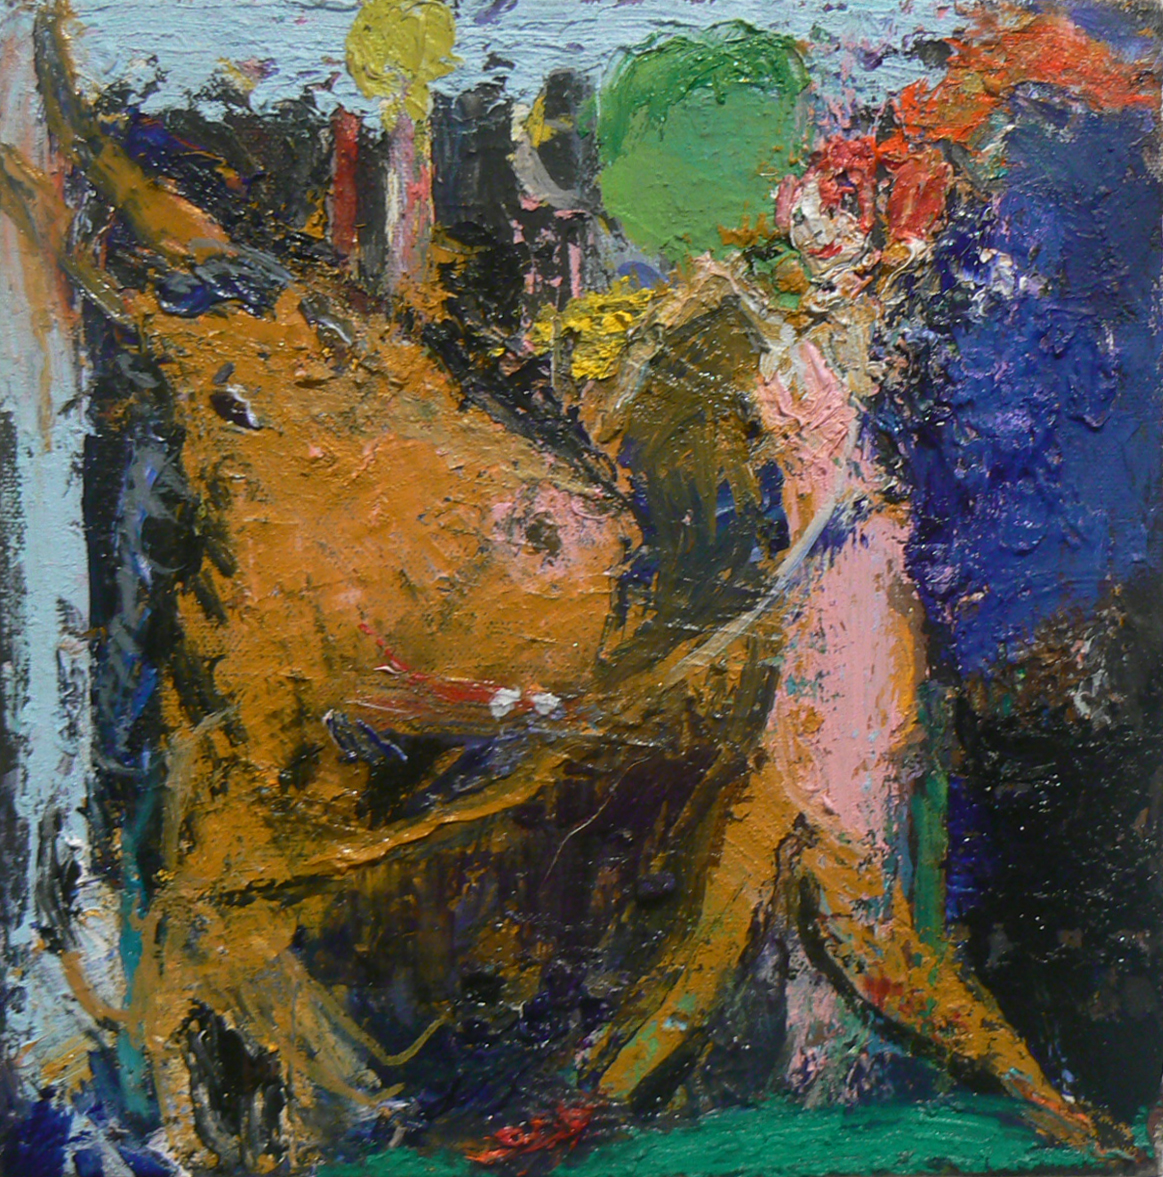 Matt Blackwell, Dancing , 2013, oil and canvas, 8h x 8w inches